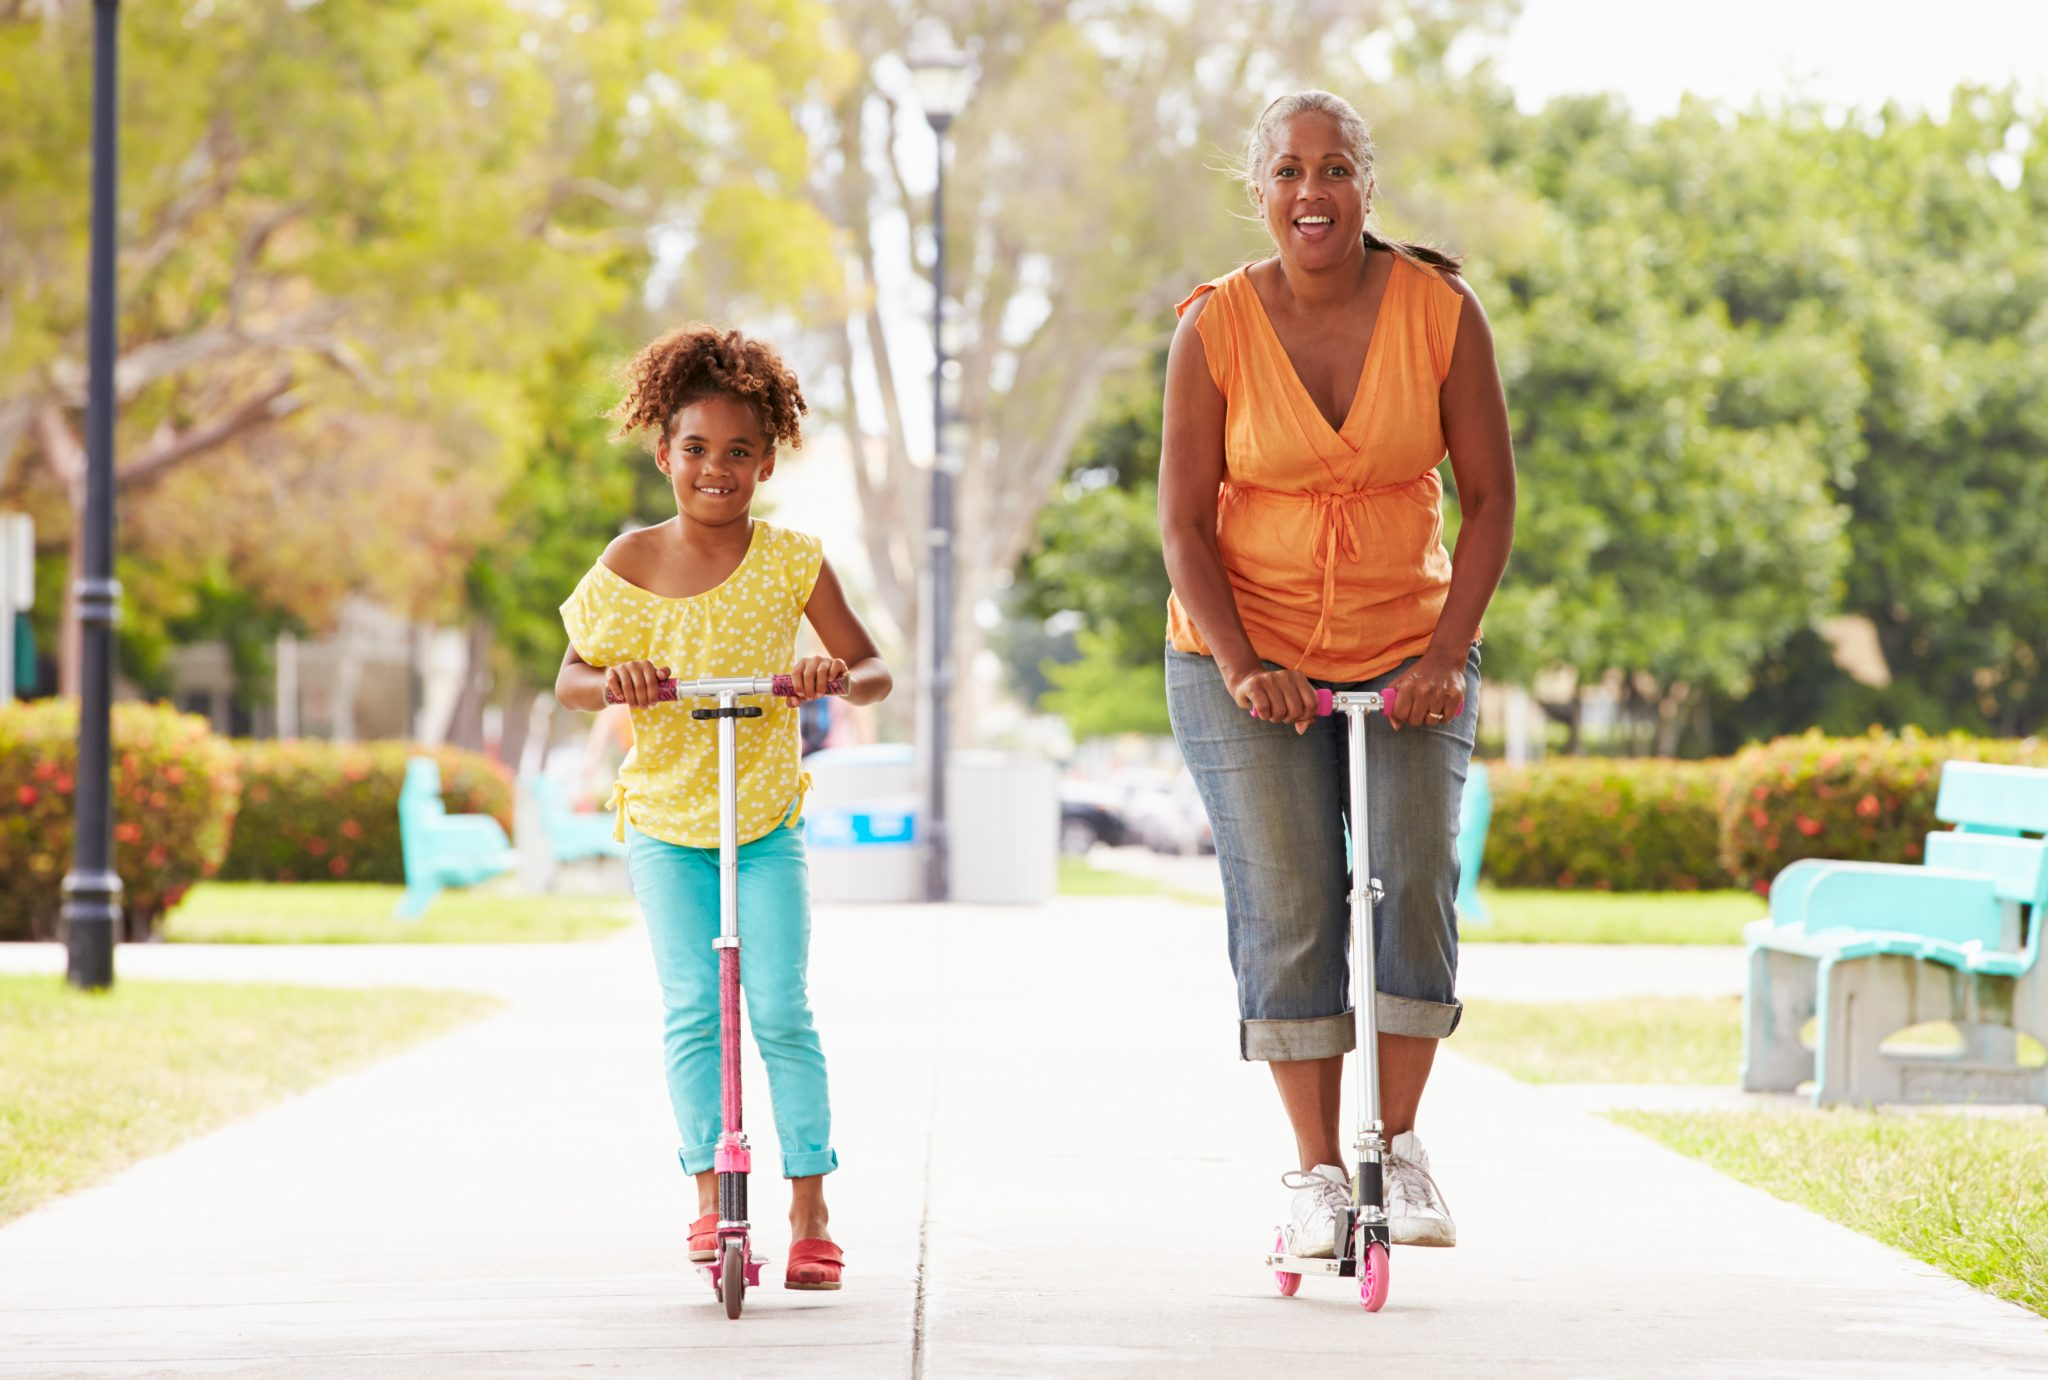 Grandmother and granddaughter get some exercise by scootering in the park.